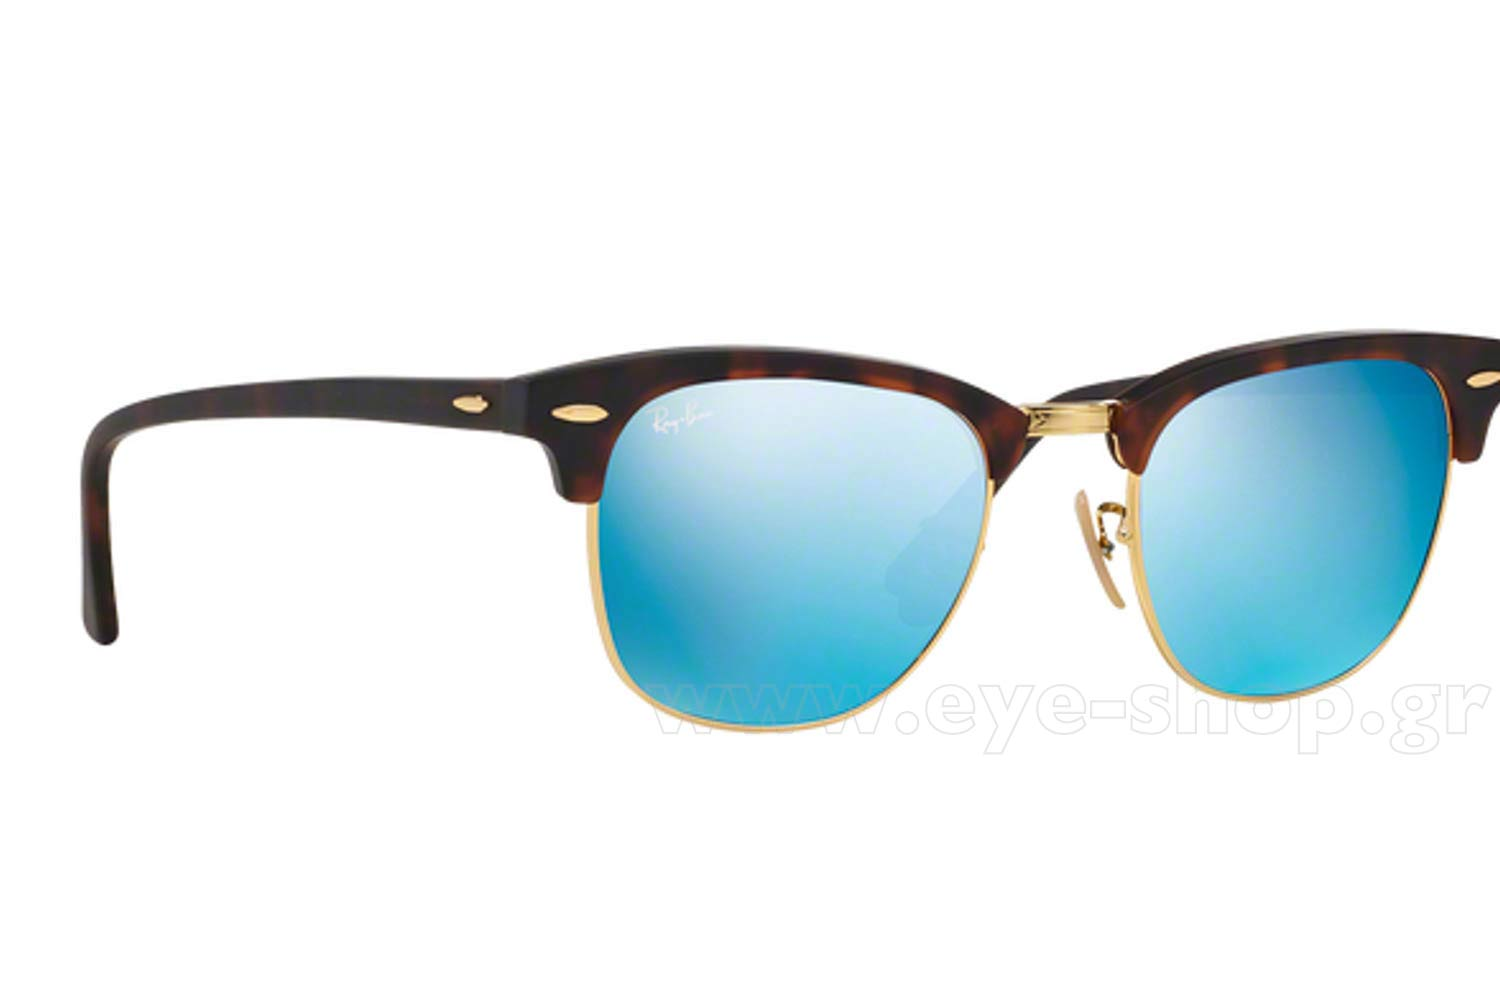 523a9e5a15 ... RAYBAN-3016-CLUBMASTER sunglasses 114517 blue mirror krystals - 49.  Clubmaster